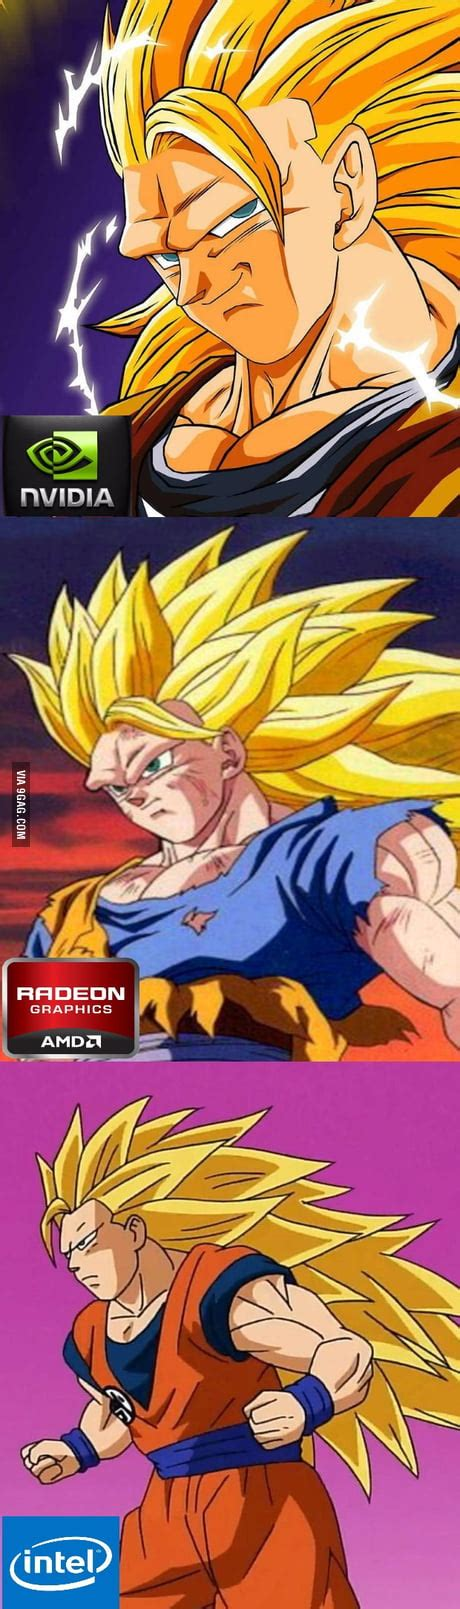 Dragon Ball Latest Anime Lol The Animation From The Latest Dragon Ball Super